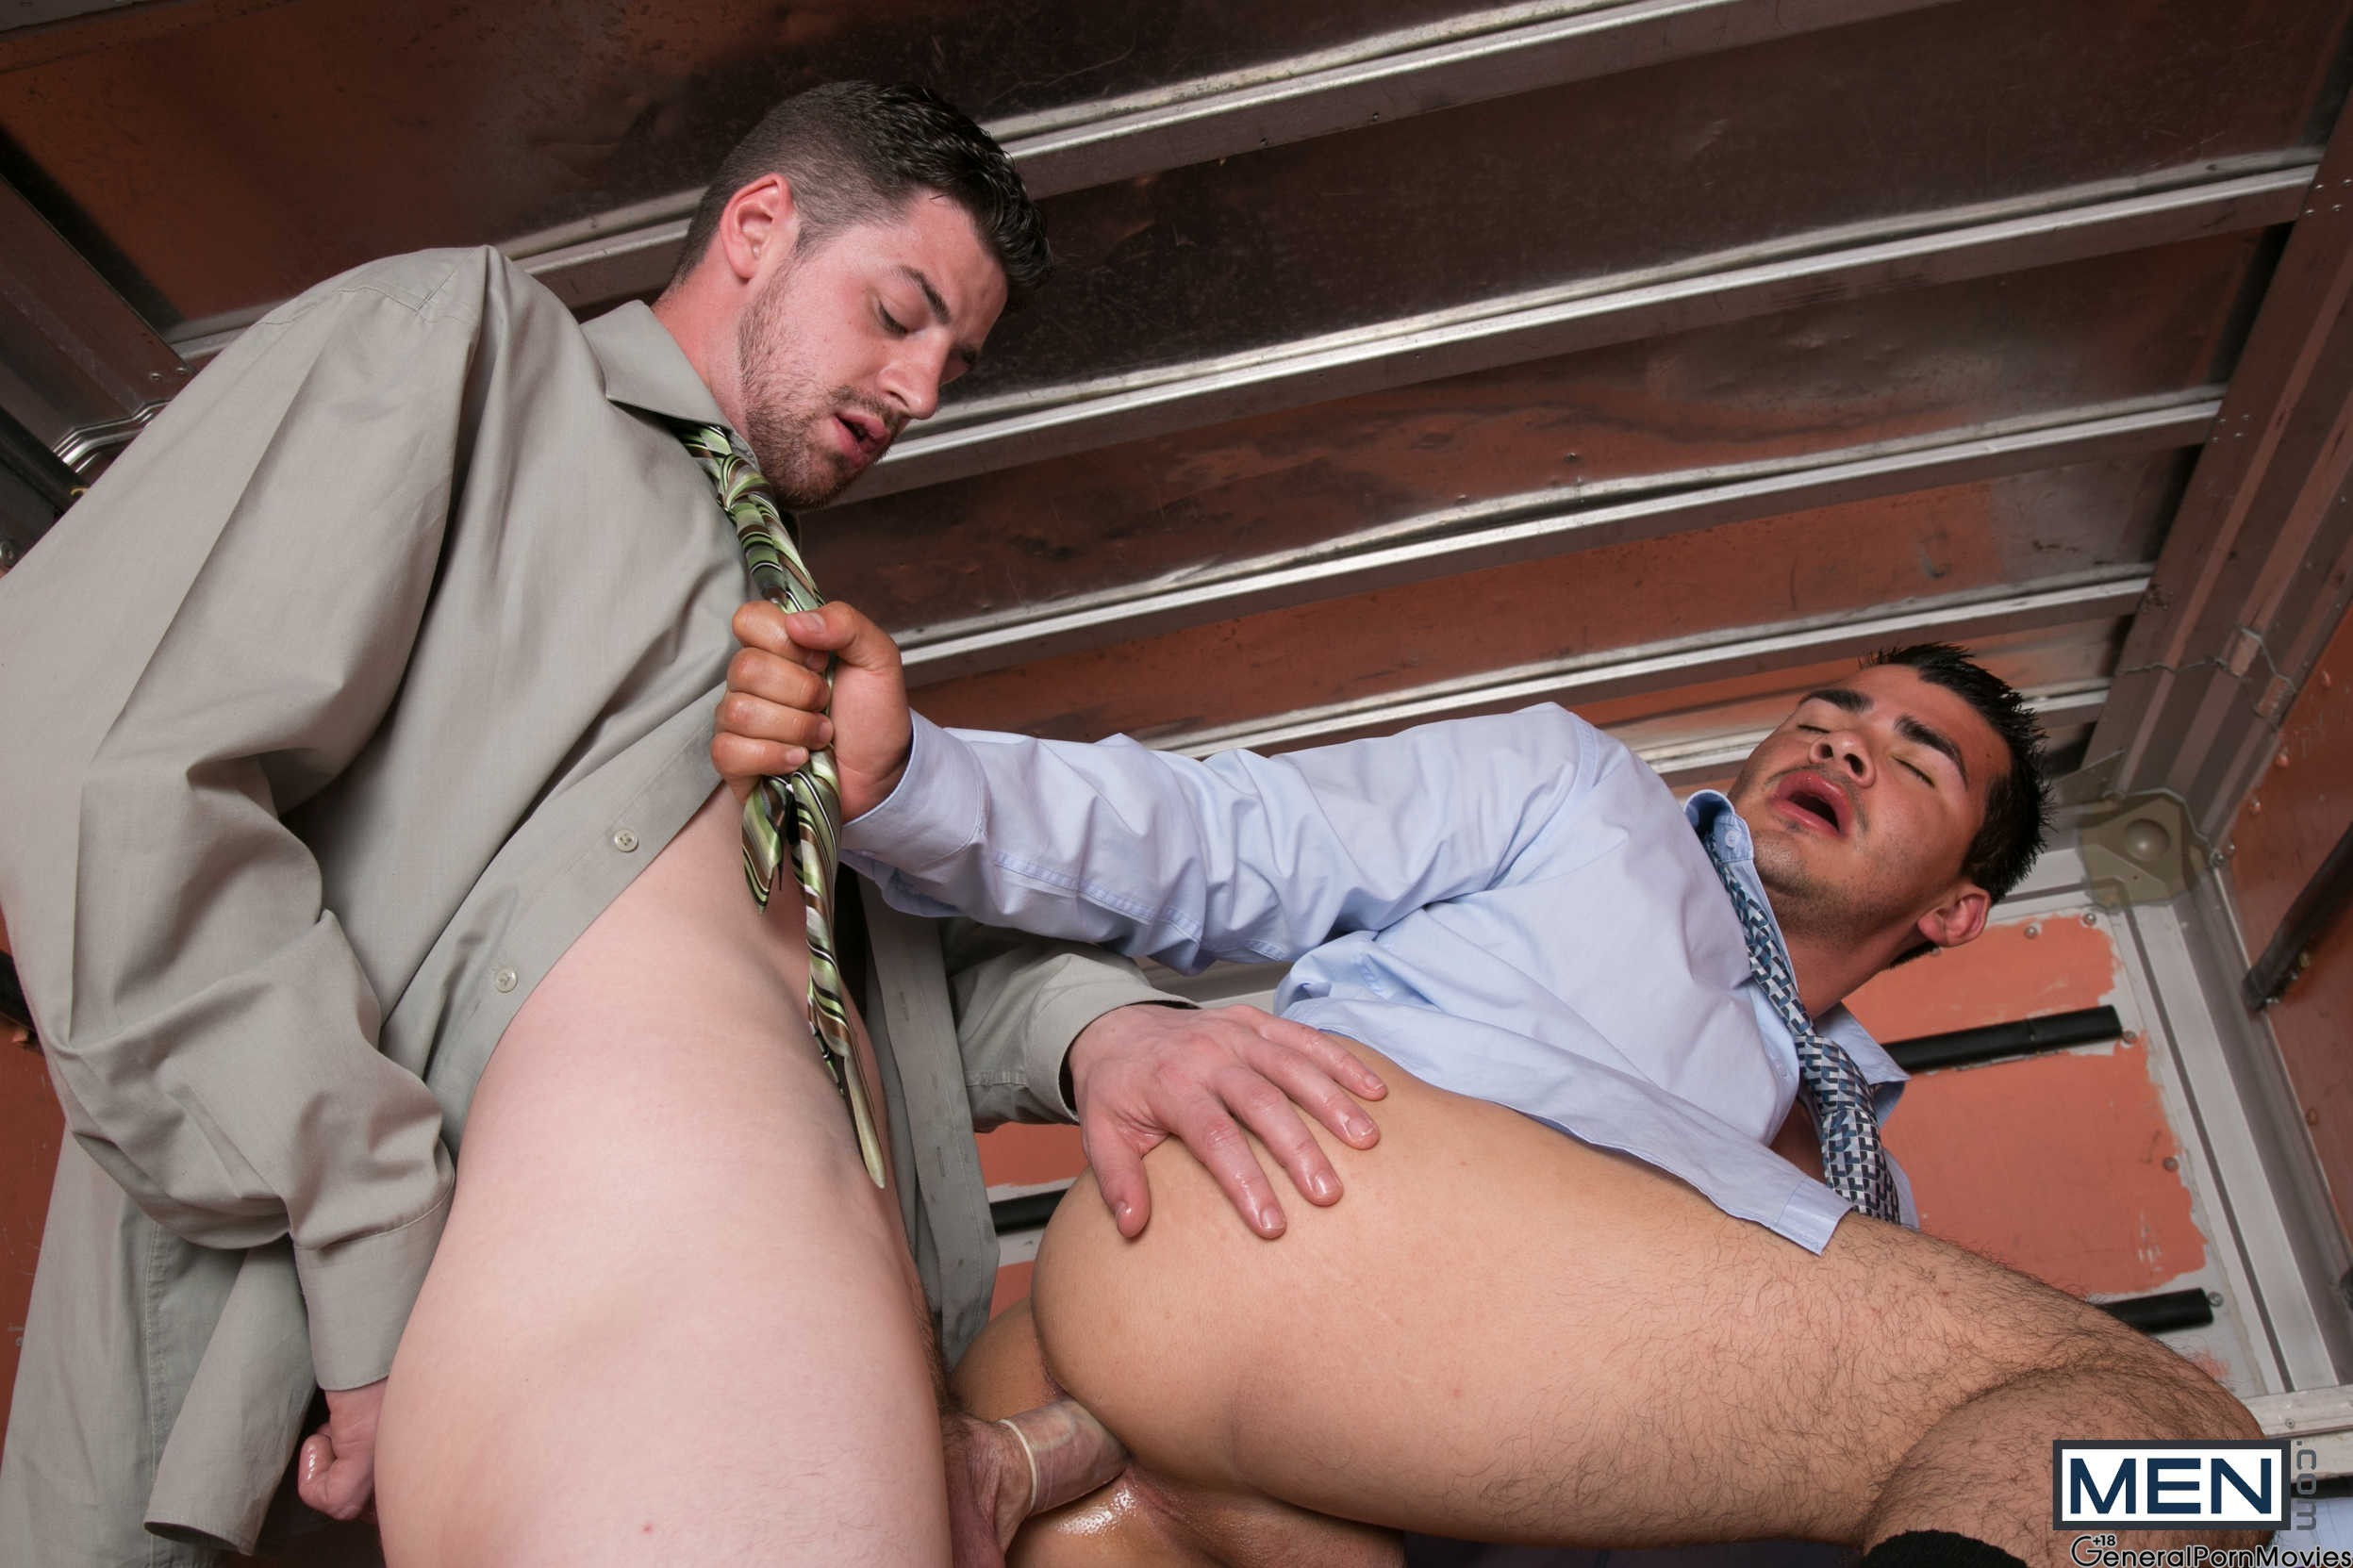 Andrew Stark Porn Interview thegayoffice – general porn movies